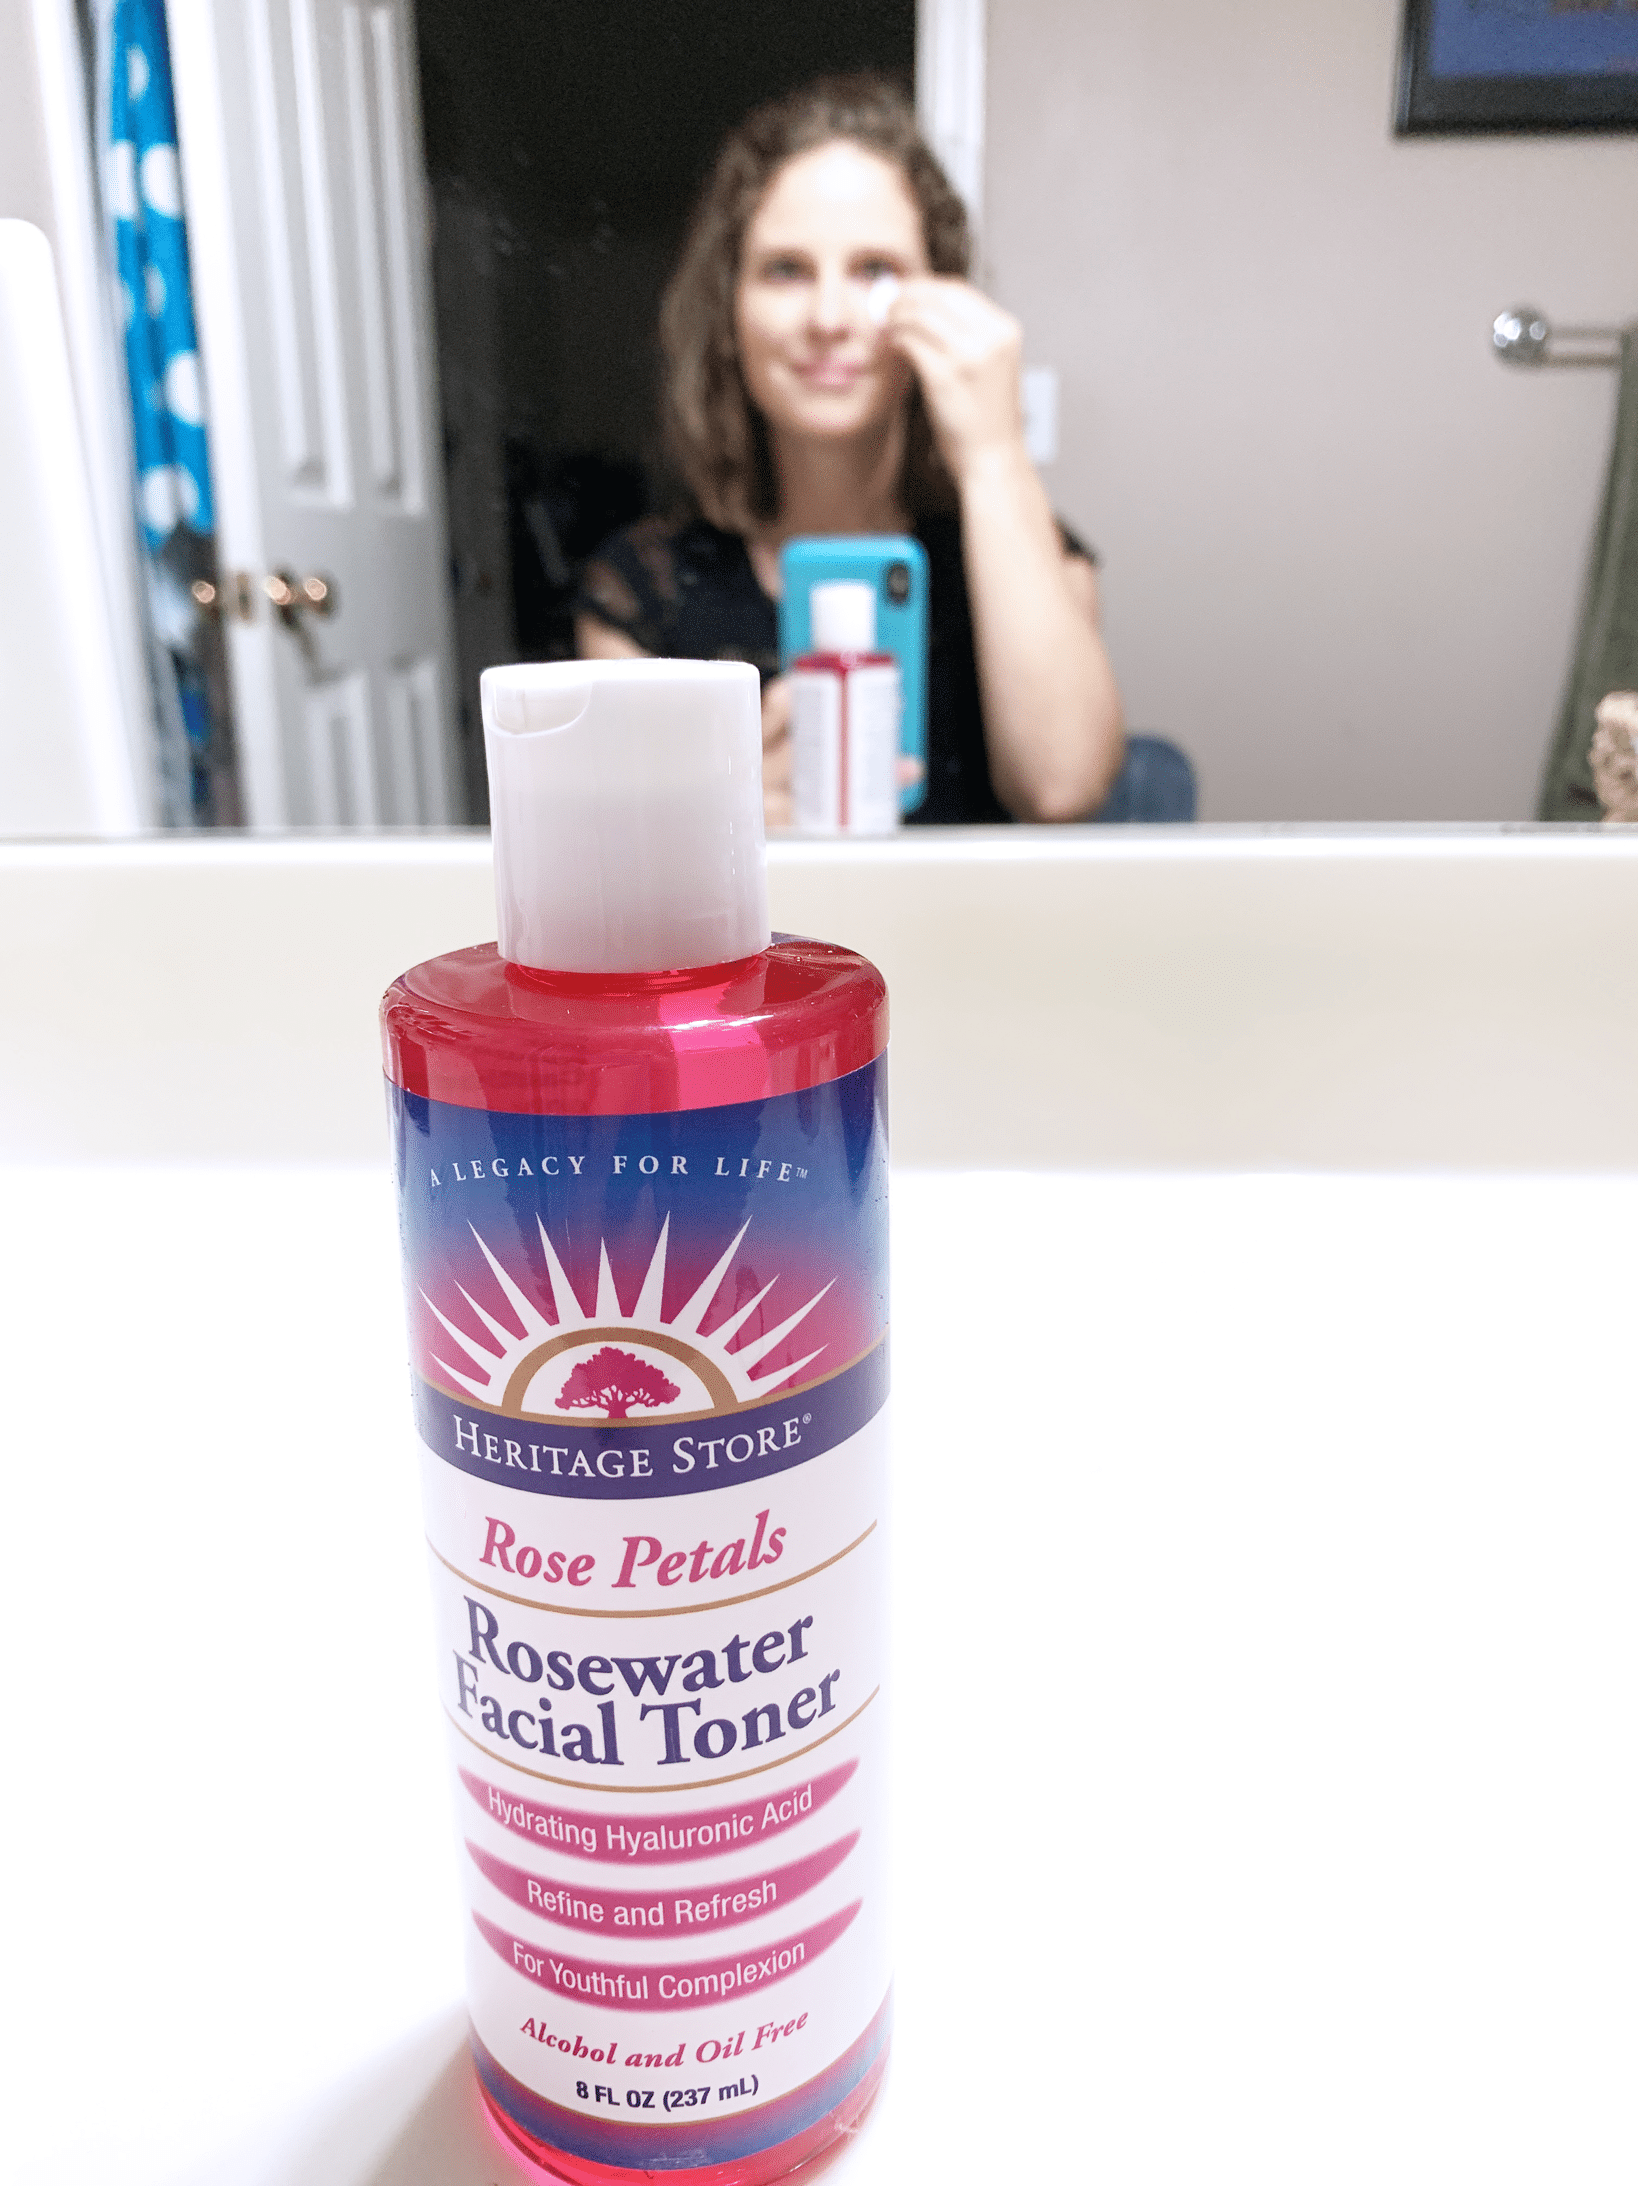 Rosewater and Rosewater Facial Toner from Heritage Store